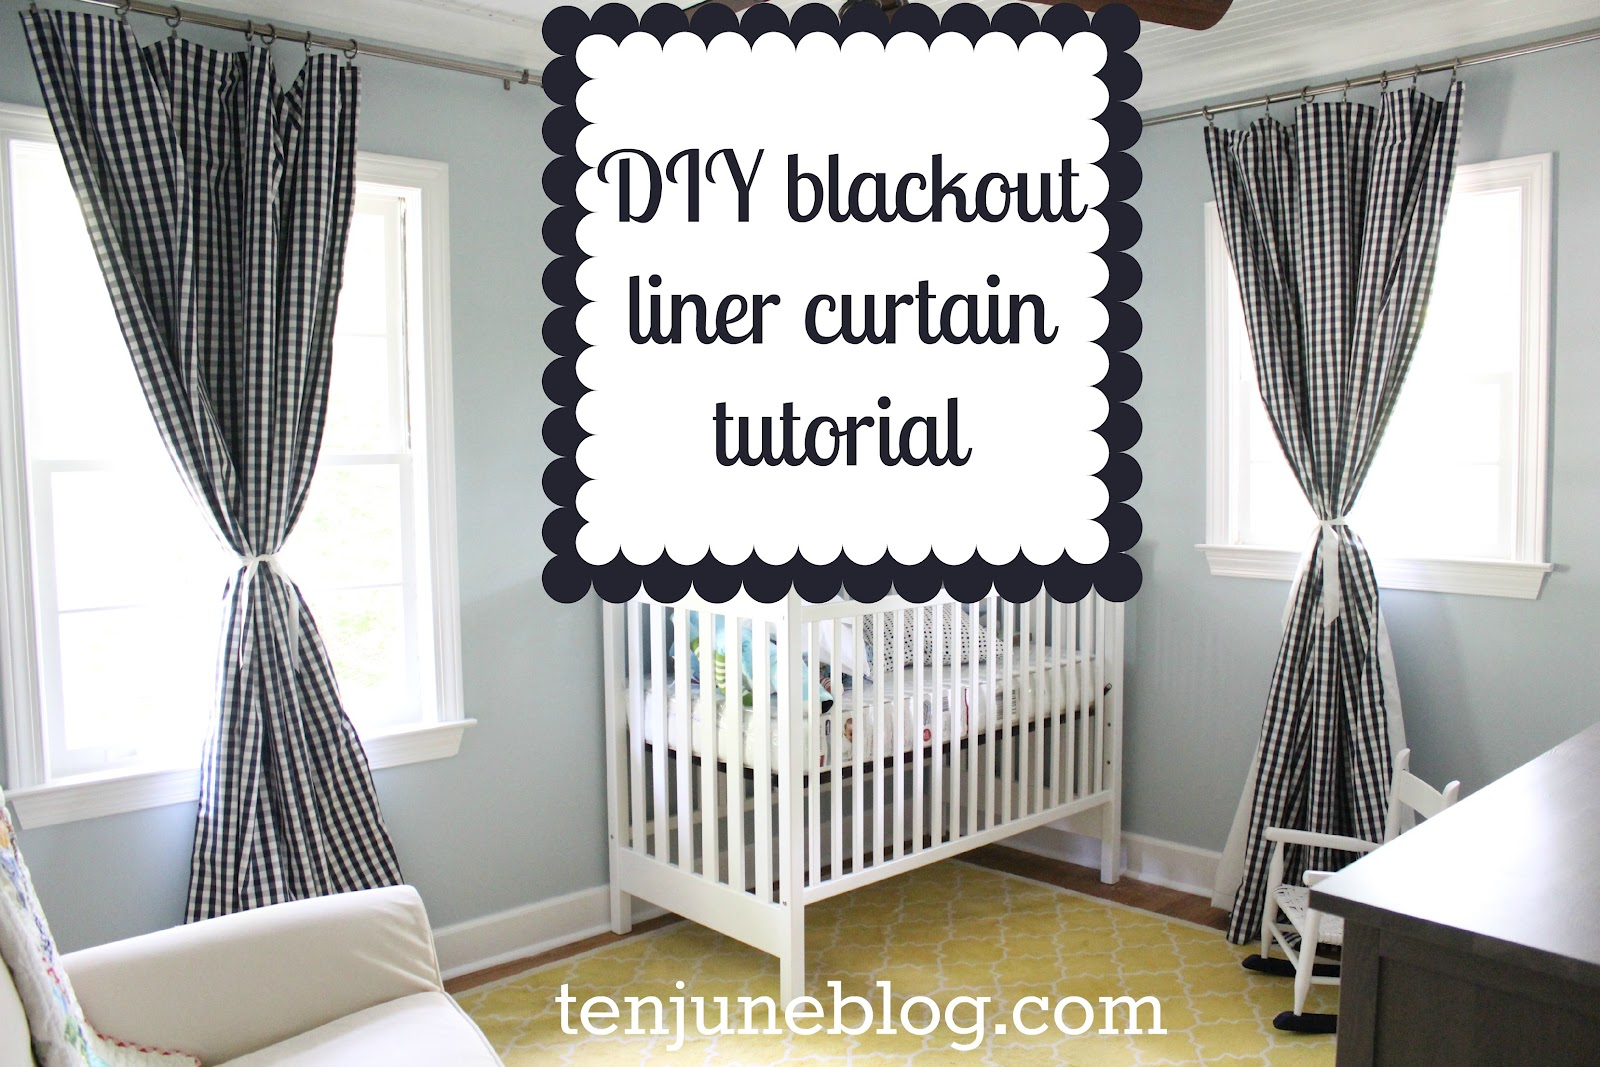 94 Inch Blackout Curtains Ten June Diy Blackout Curtain Tutorial How To Make Awesome